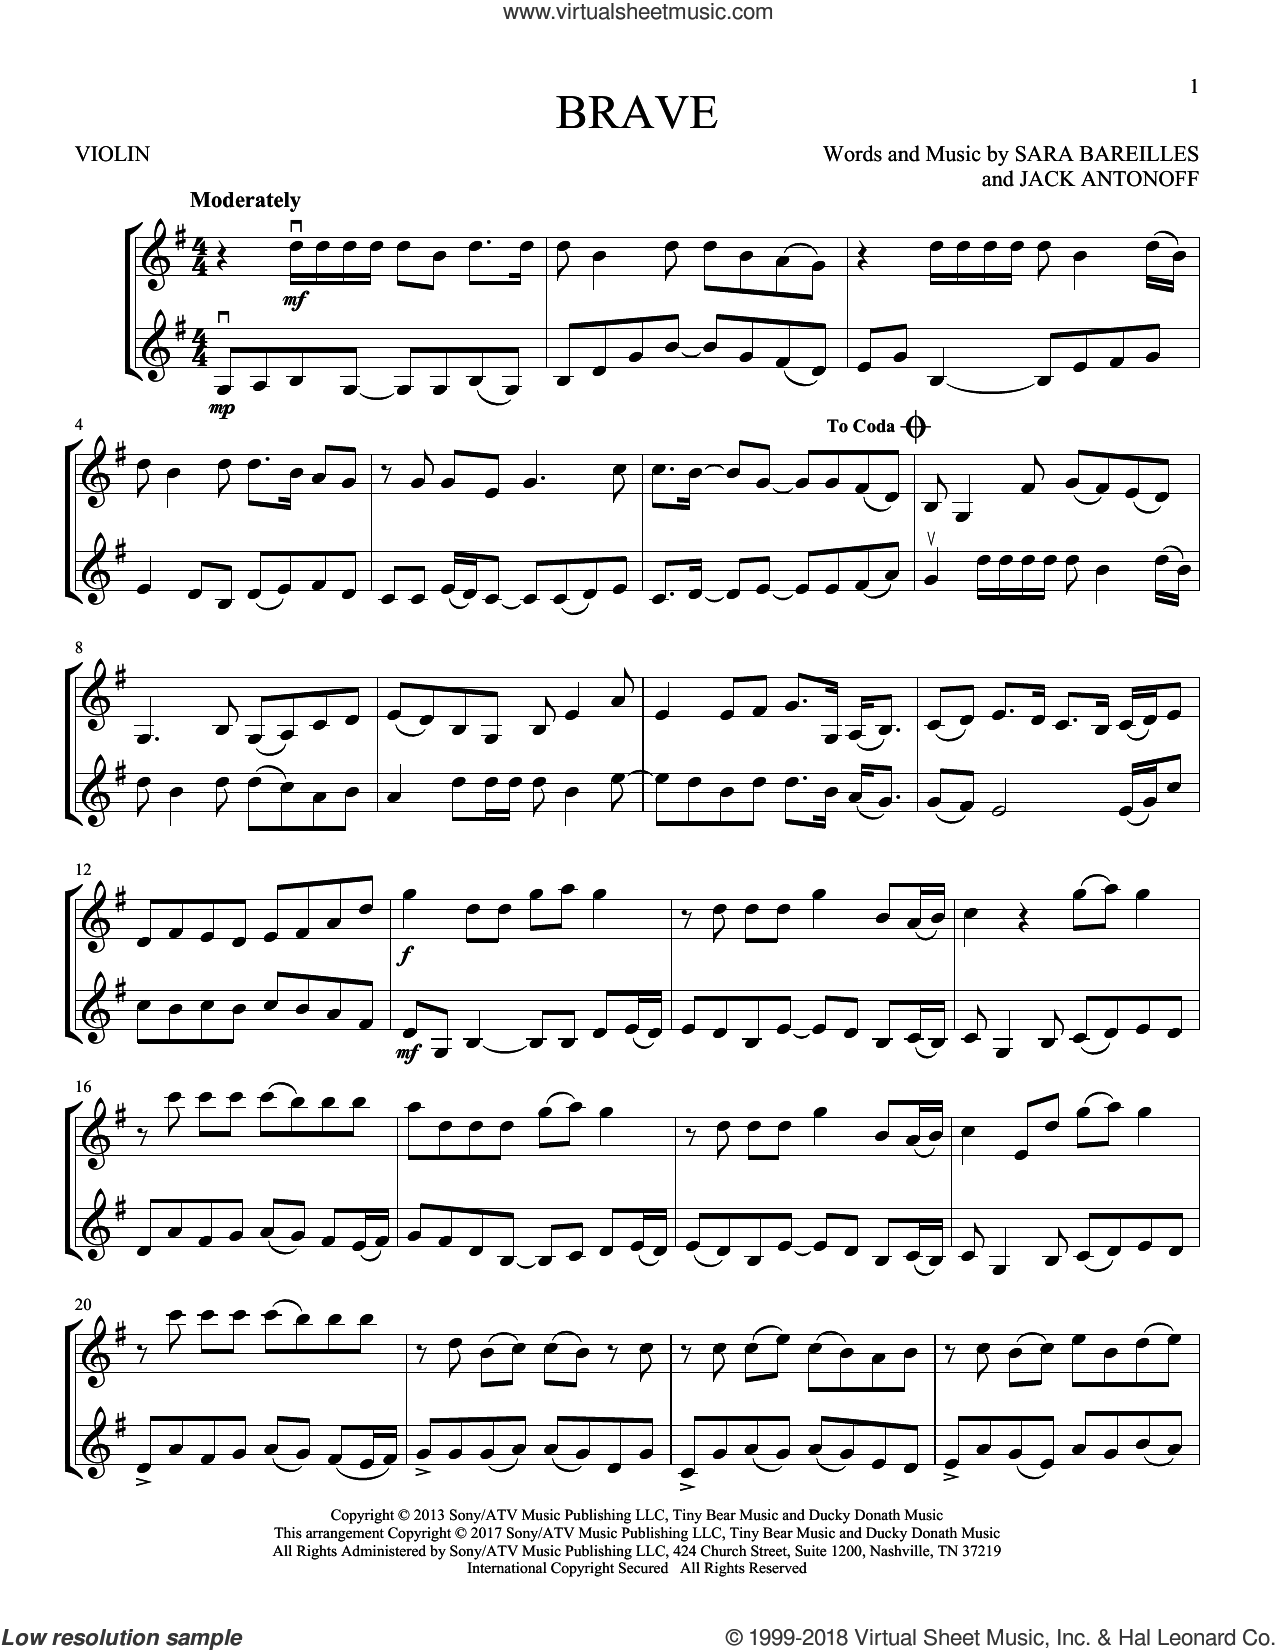 Brave sheet music for two violins (duets, violin duets) by Sara Bareilles and Jack Antonoff, intermediate skill level